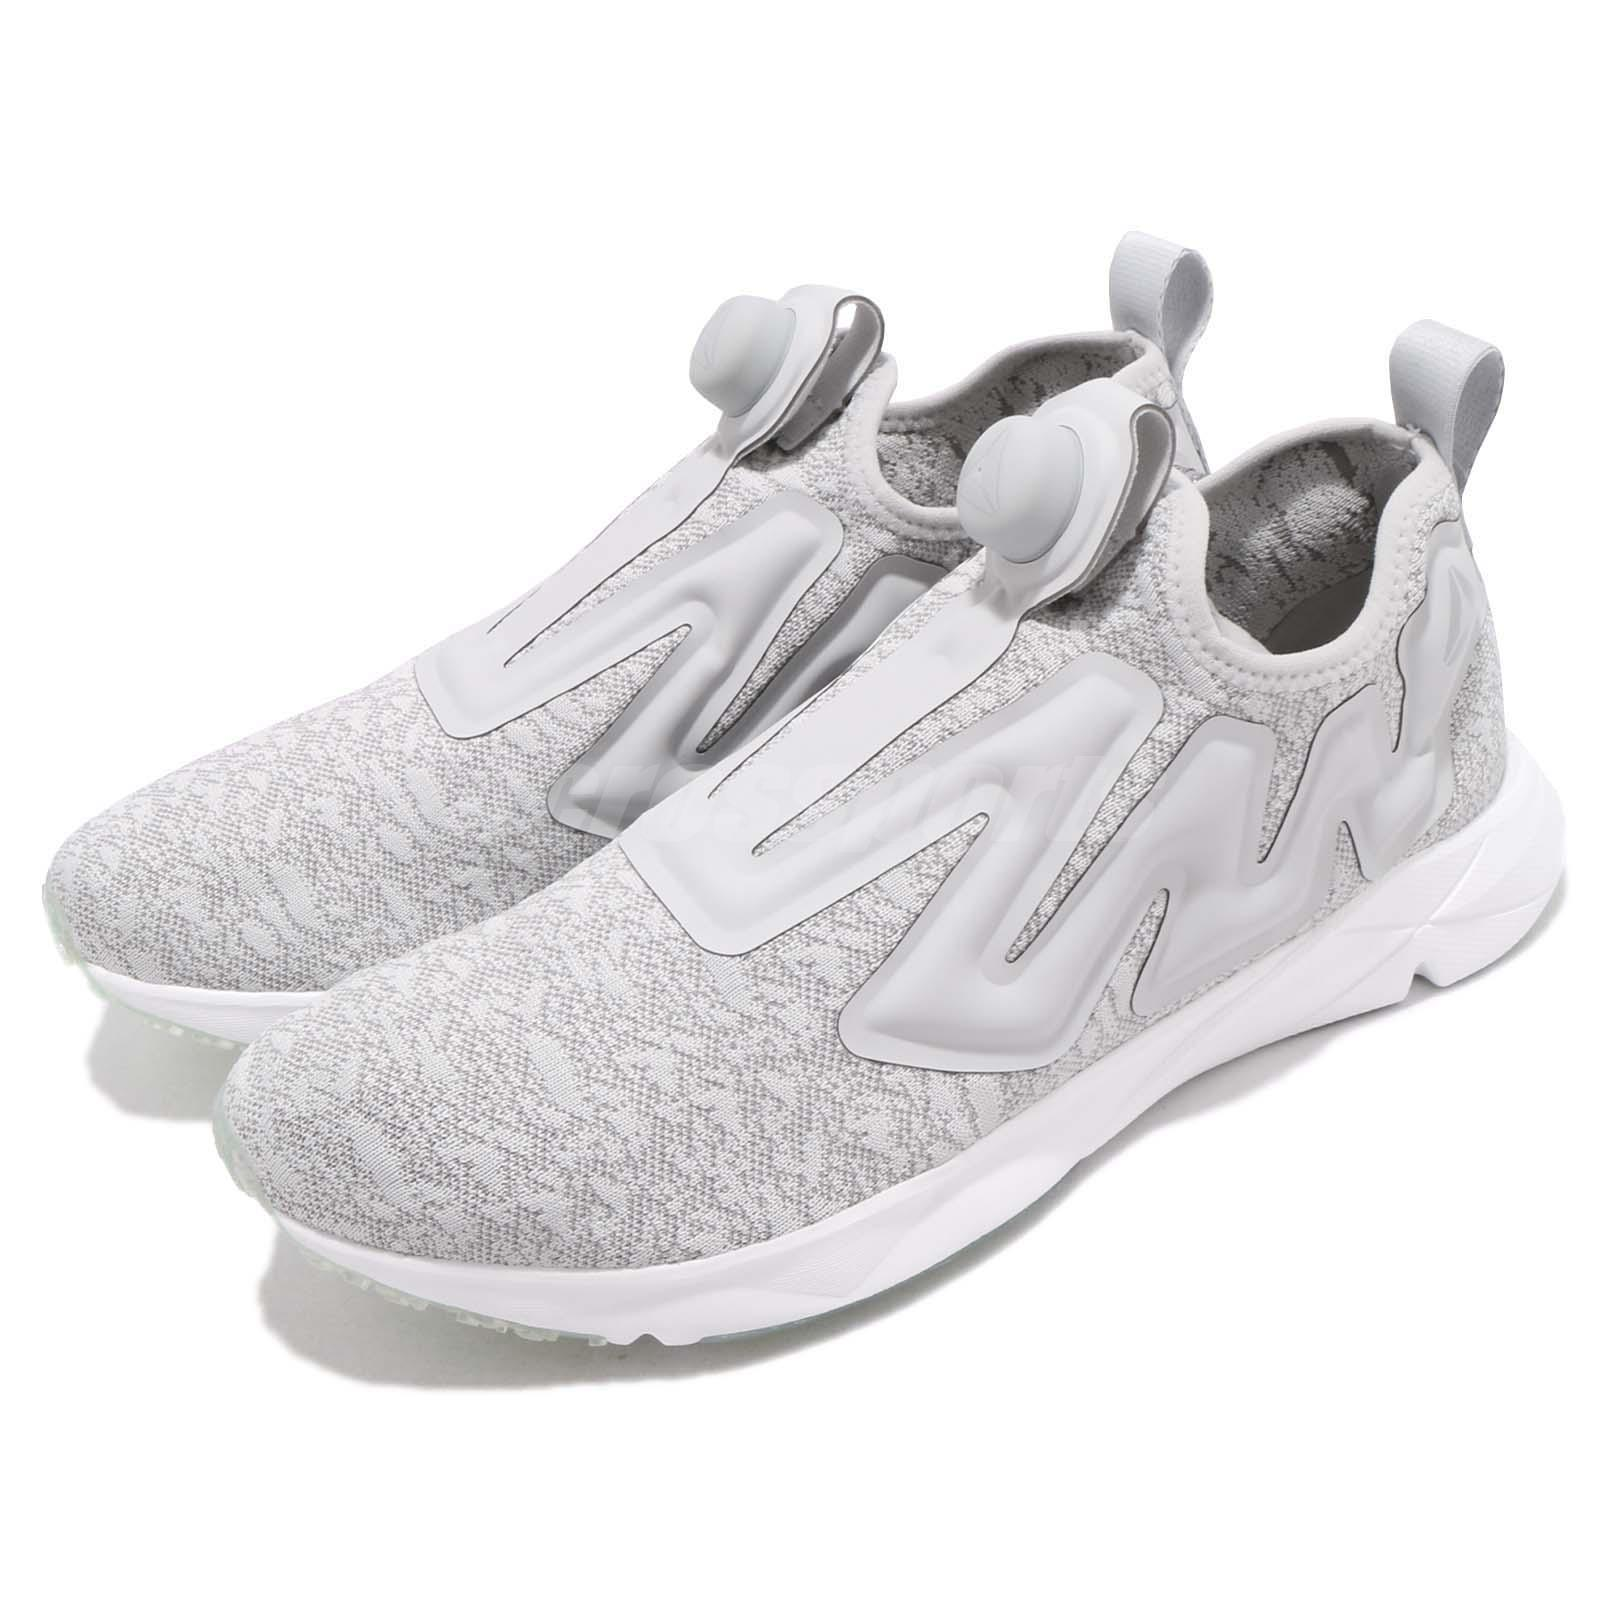 926e6d8d7ca Details about Reebok Pump Supreme Ice Grey White Men Running Slip On Shoes  Sneakers CN2937